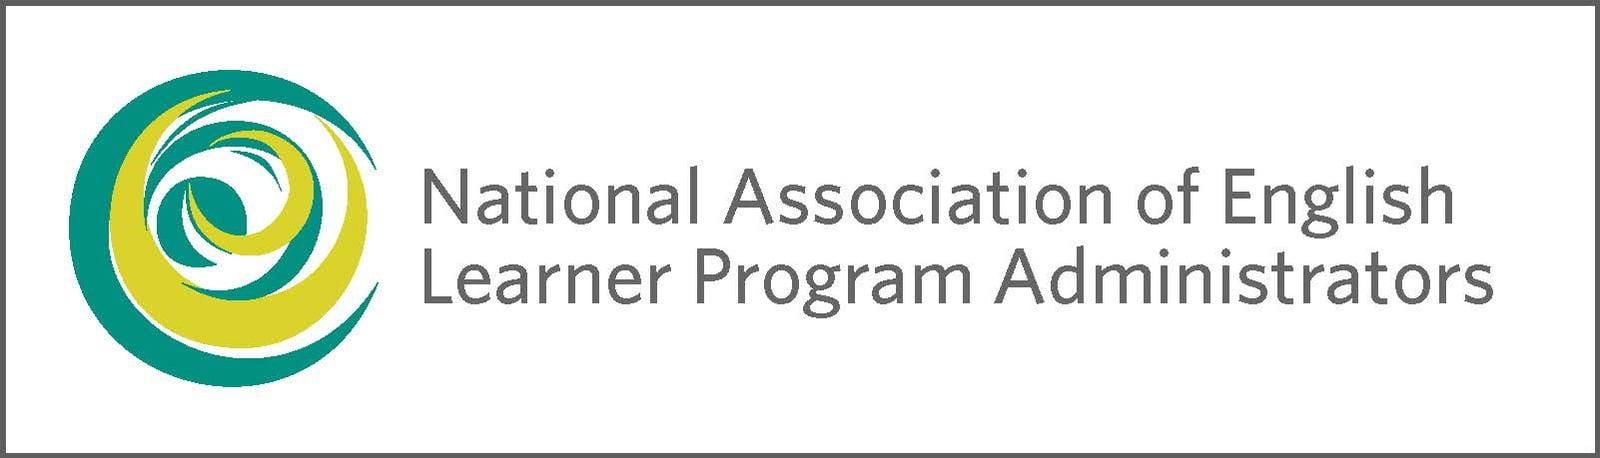 National Association of English Learner Program Administrators